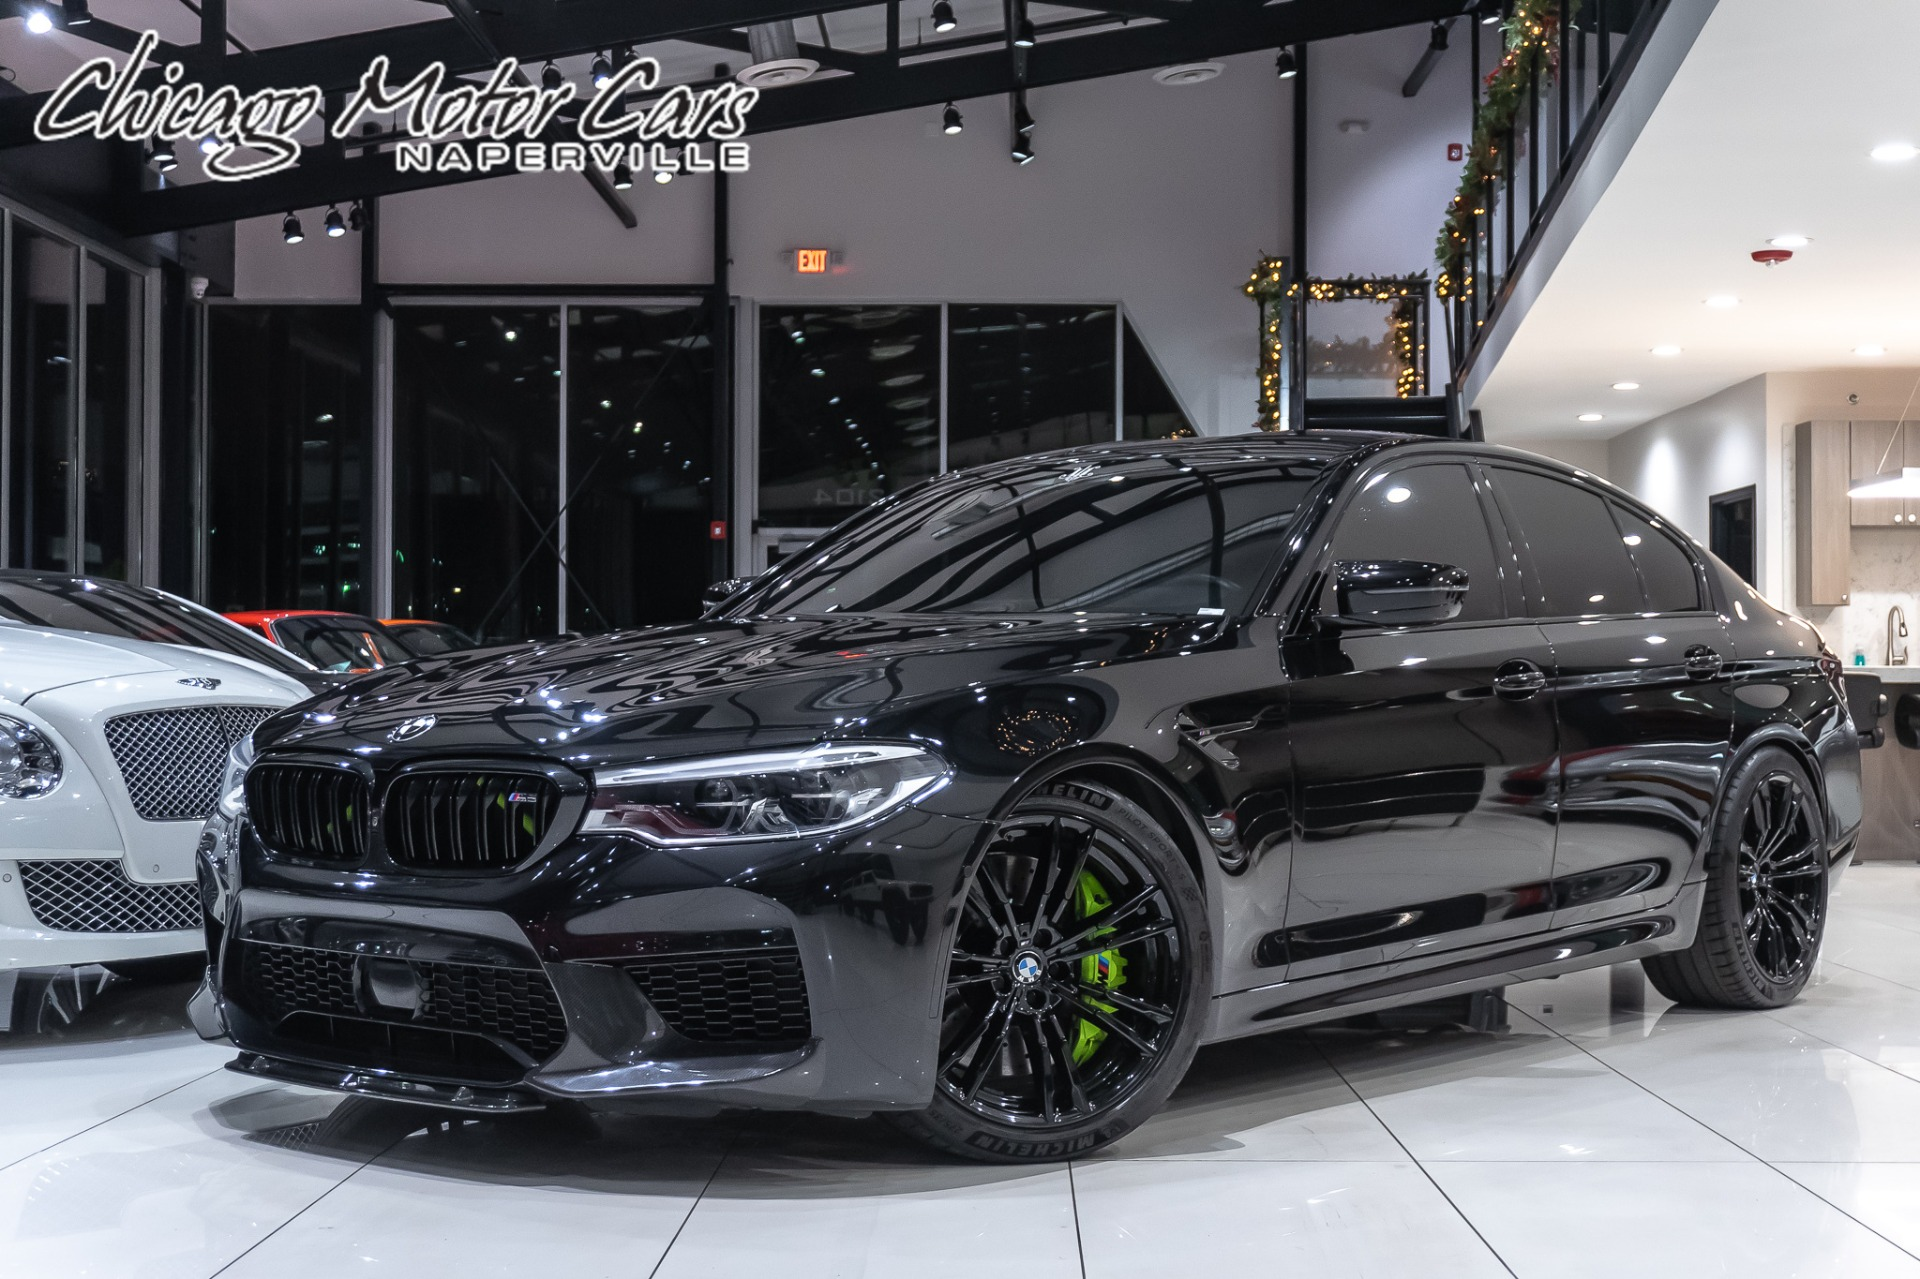 Used 2018 Bmw M5 Msrp 121k Driver Assist Executive Pkg Tune Carbon Fiber Ext Upgrades For Sale Special Pricing Chicago Motor Cars Stock 17751